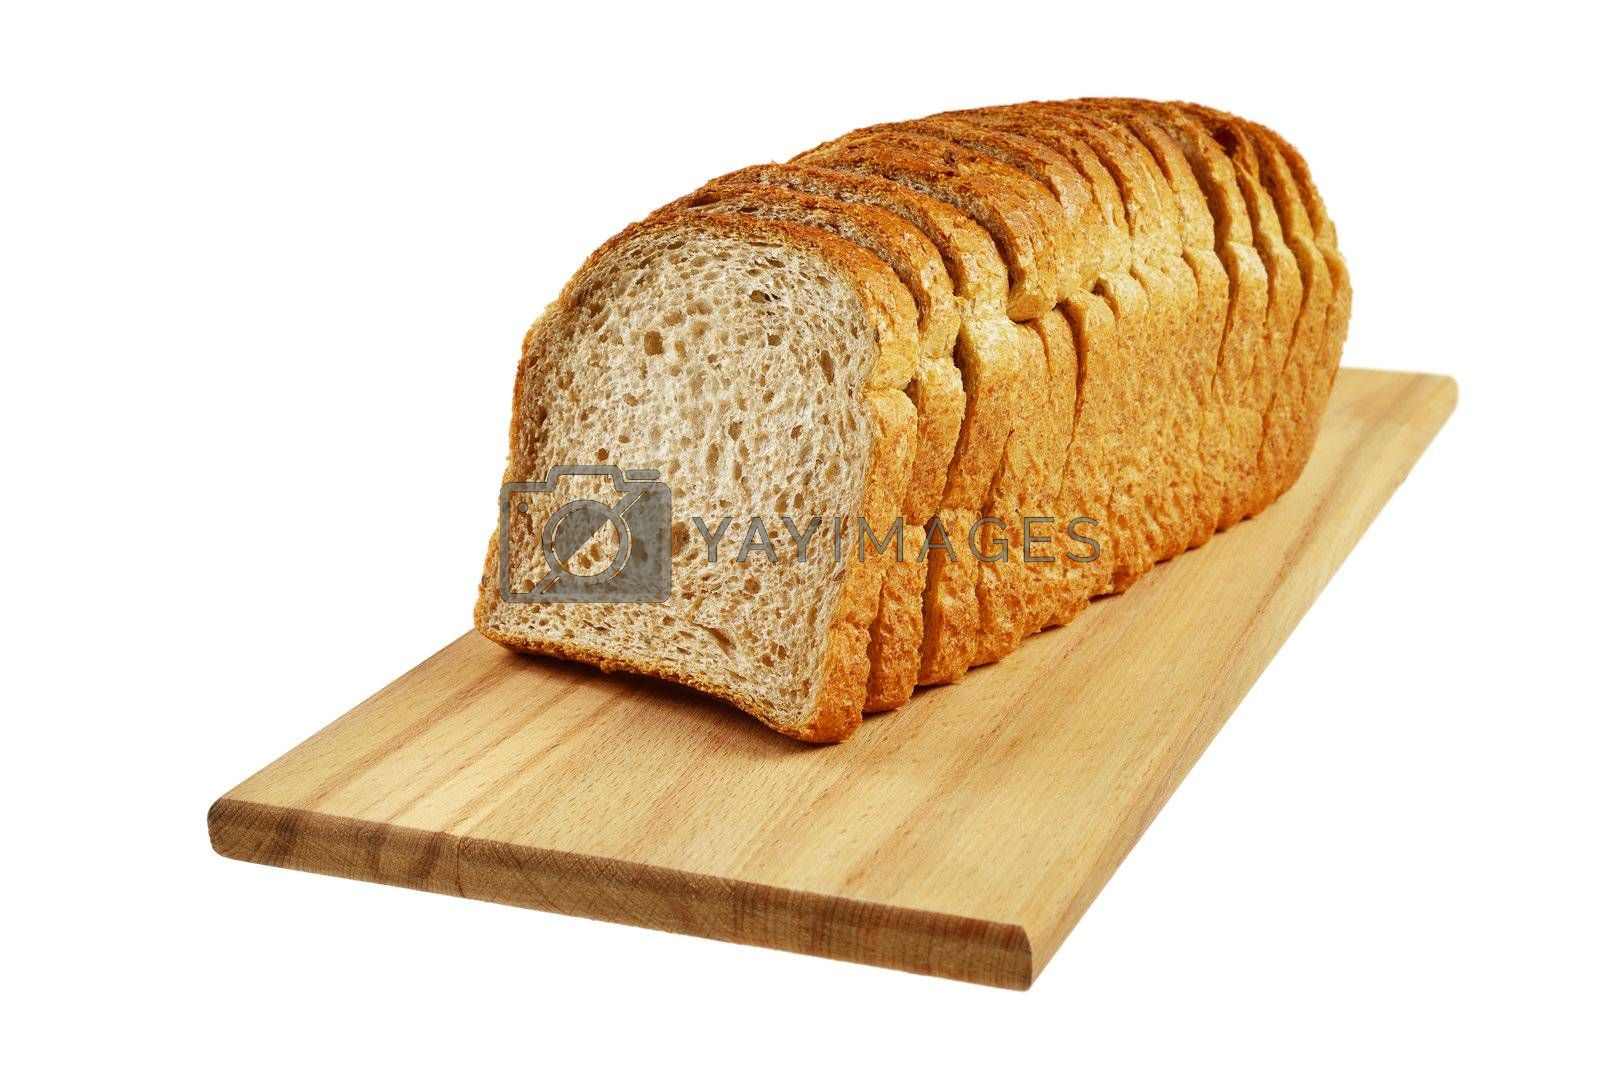 Sliced bread. Isolated on white.